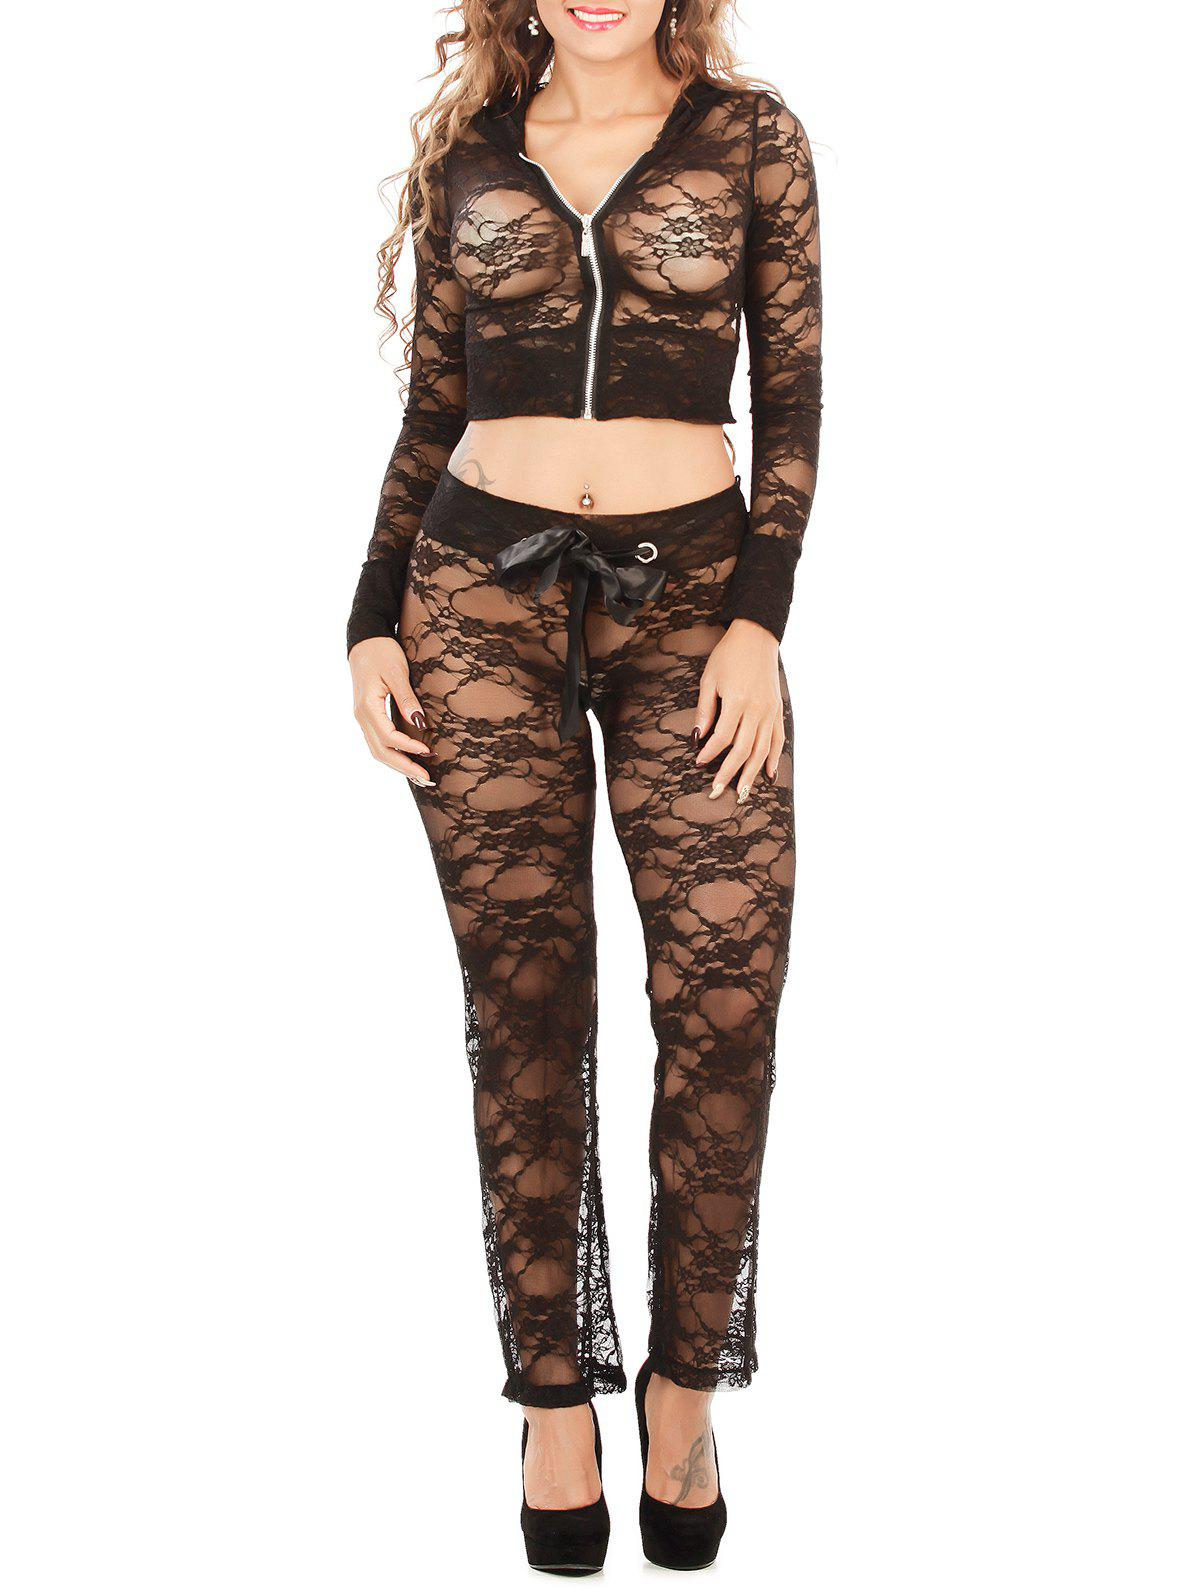 Hooded Cropped Lace Jacket and String Pants Loungewear - BLACK XL